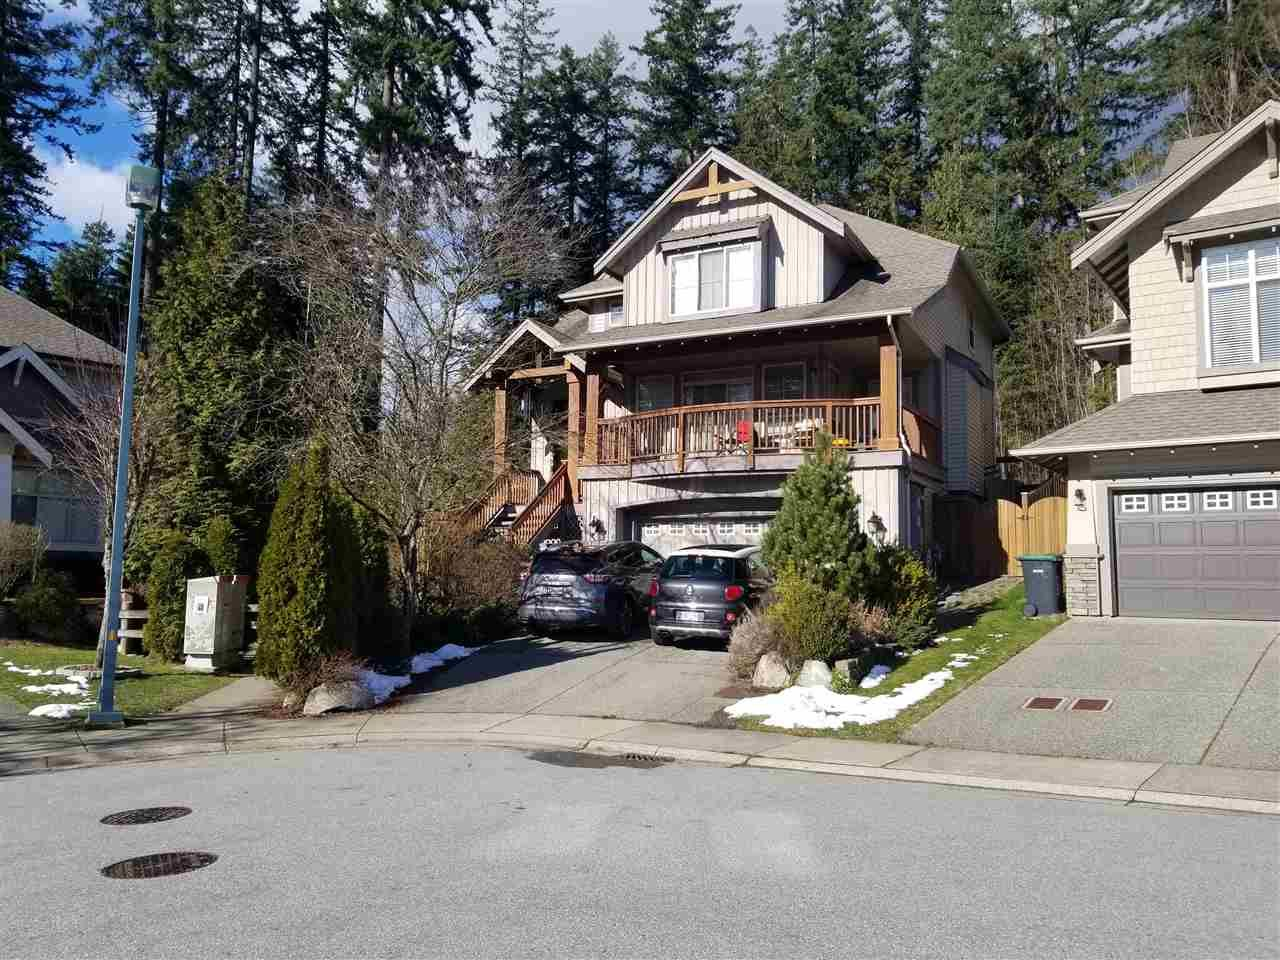 Main Photo: 43 HOLLY Drive in Port Moody: Heritage Woods PM House for sale : MLS®# R2540003